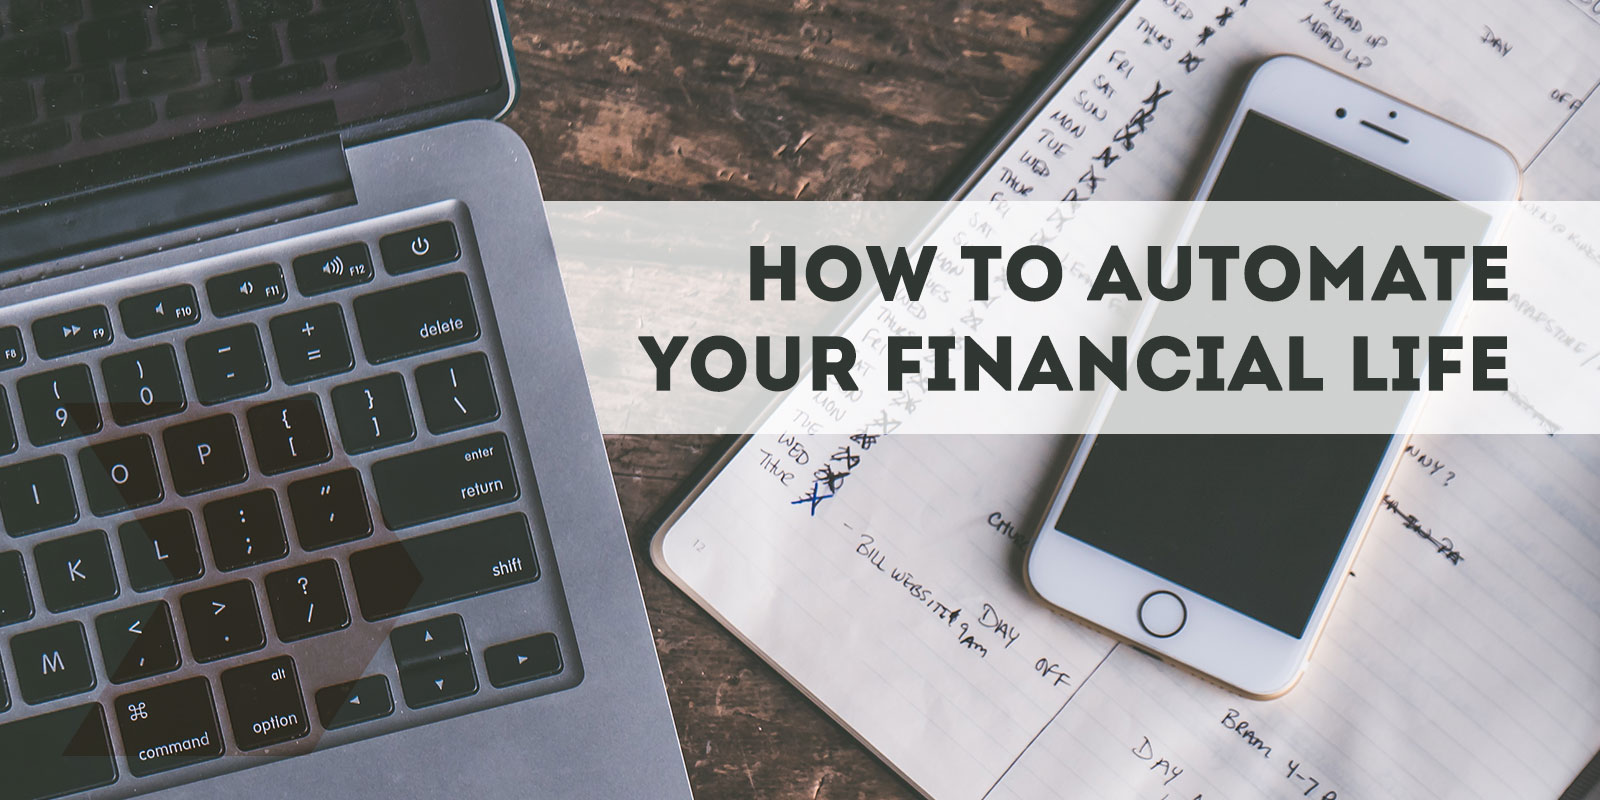 How To Automate Your Financial Life